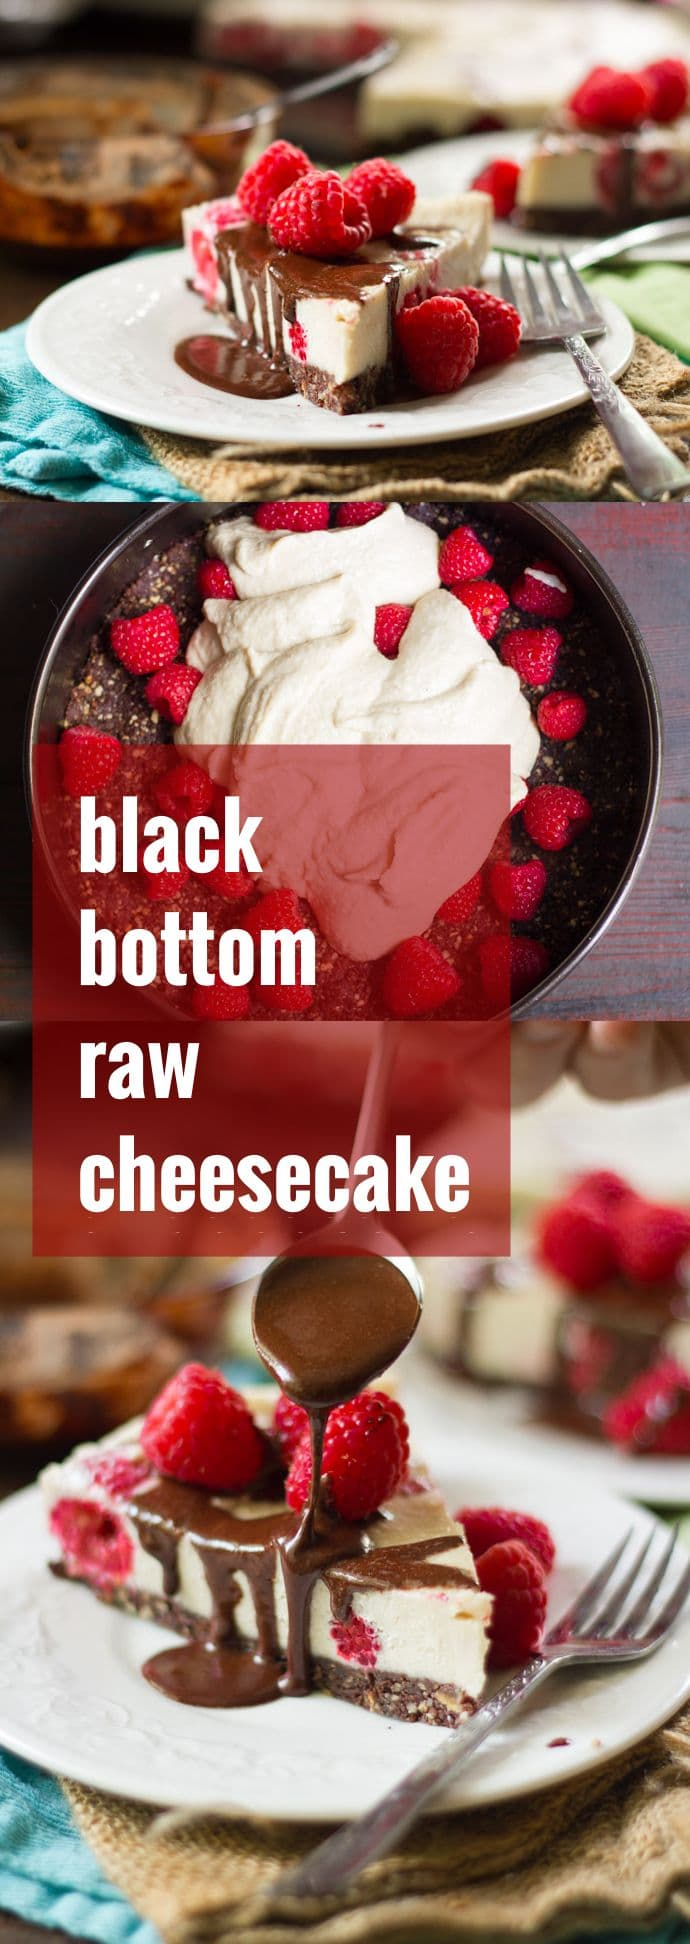 Black Bottom Raw Cheesecake